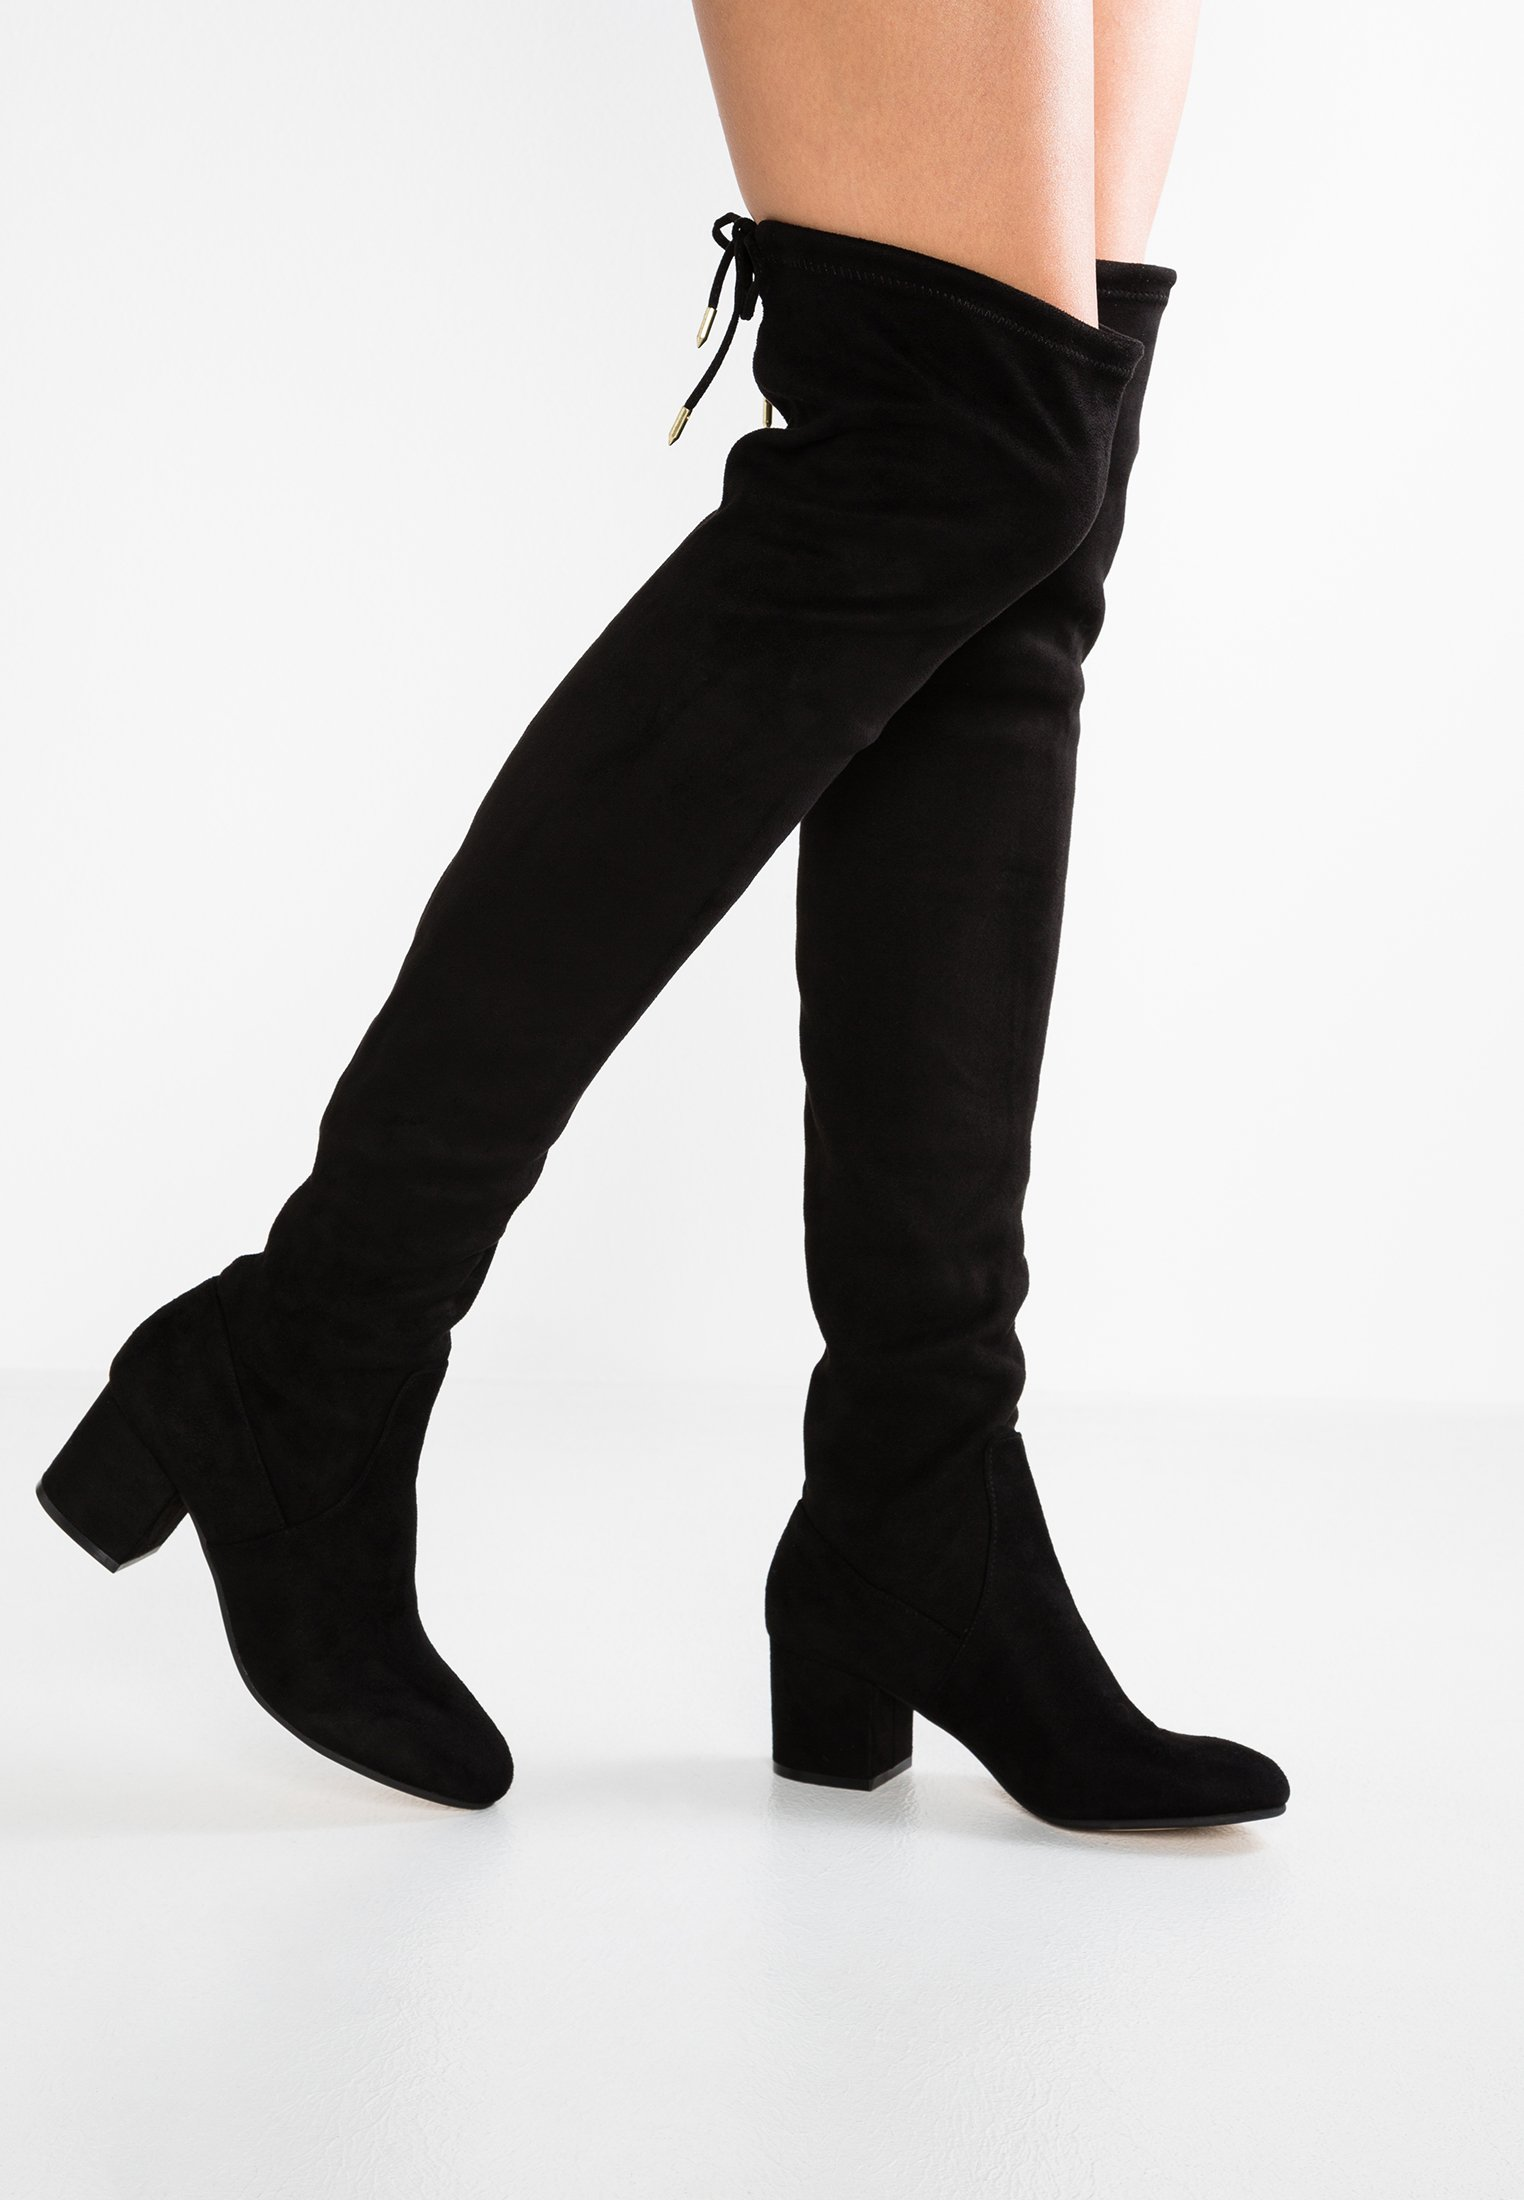 Women GINA - Over-the-knee boots